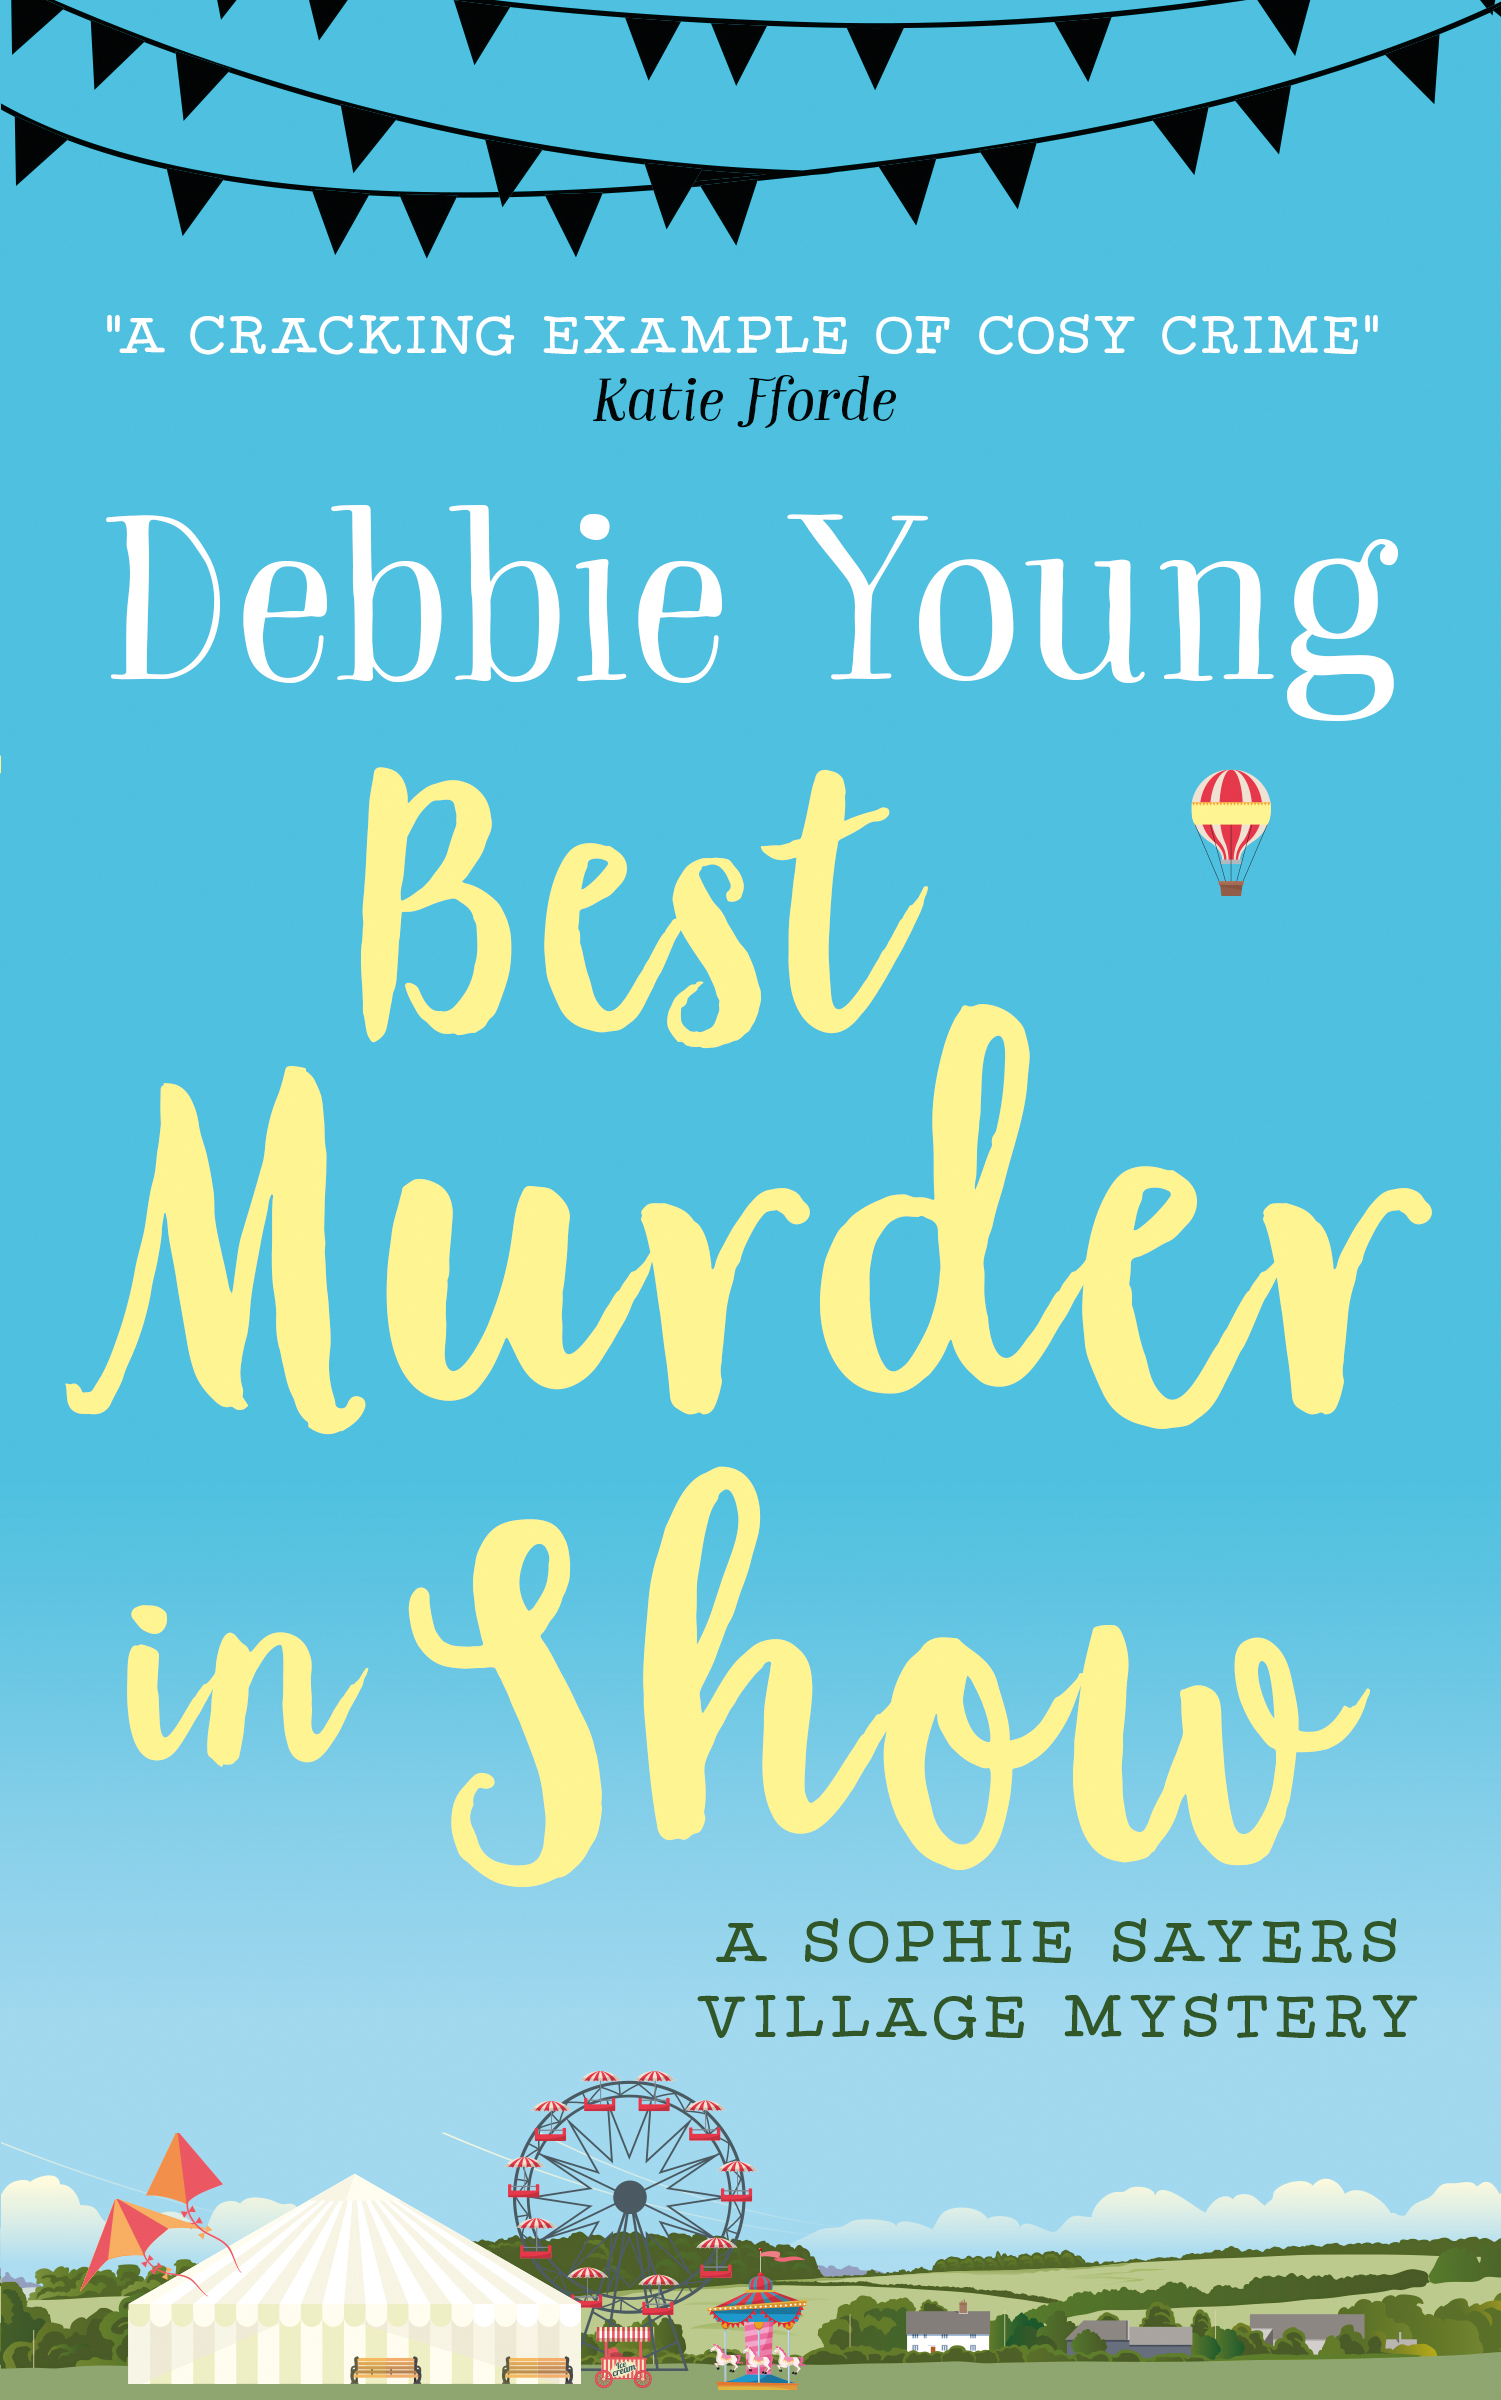 Sophie sayers village mysteries debbie young fandeluxe Choice Image